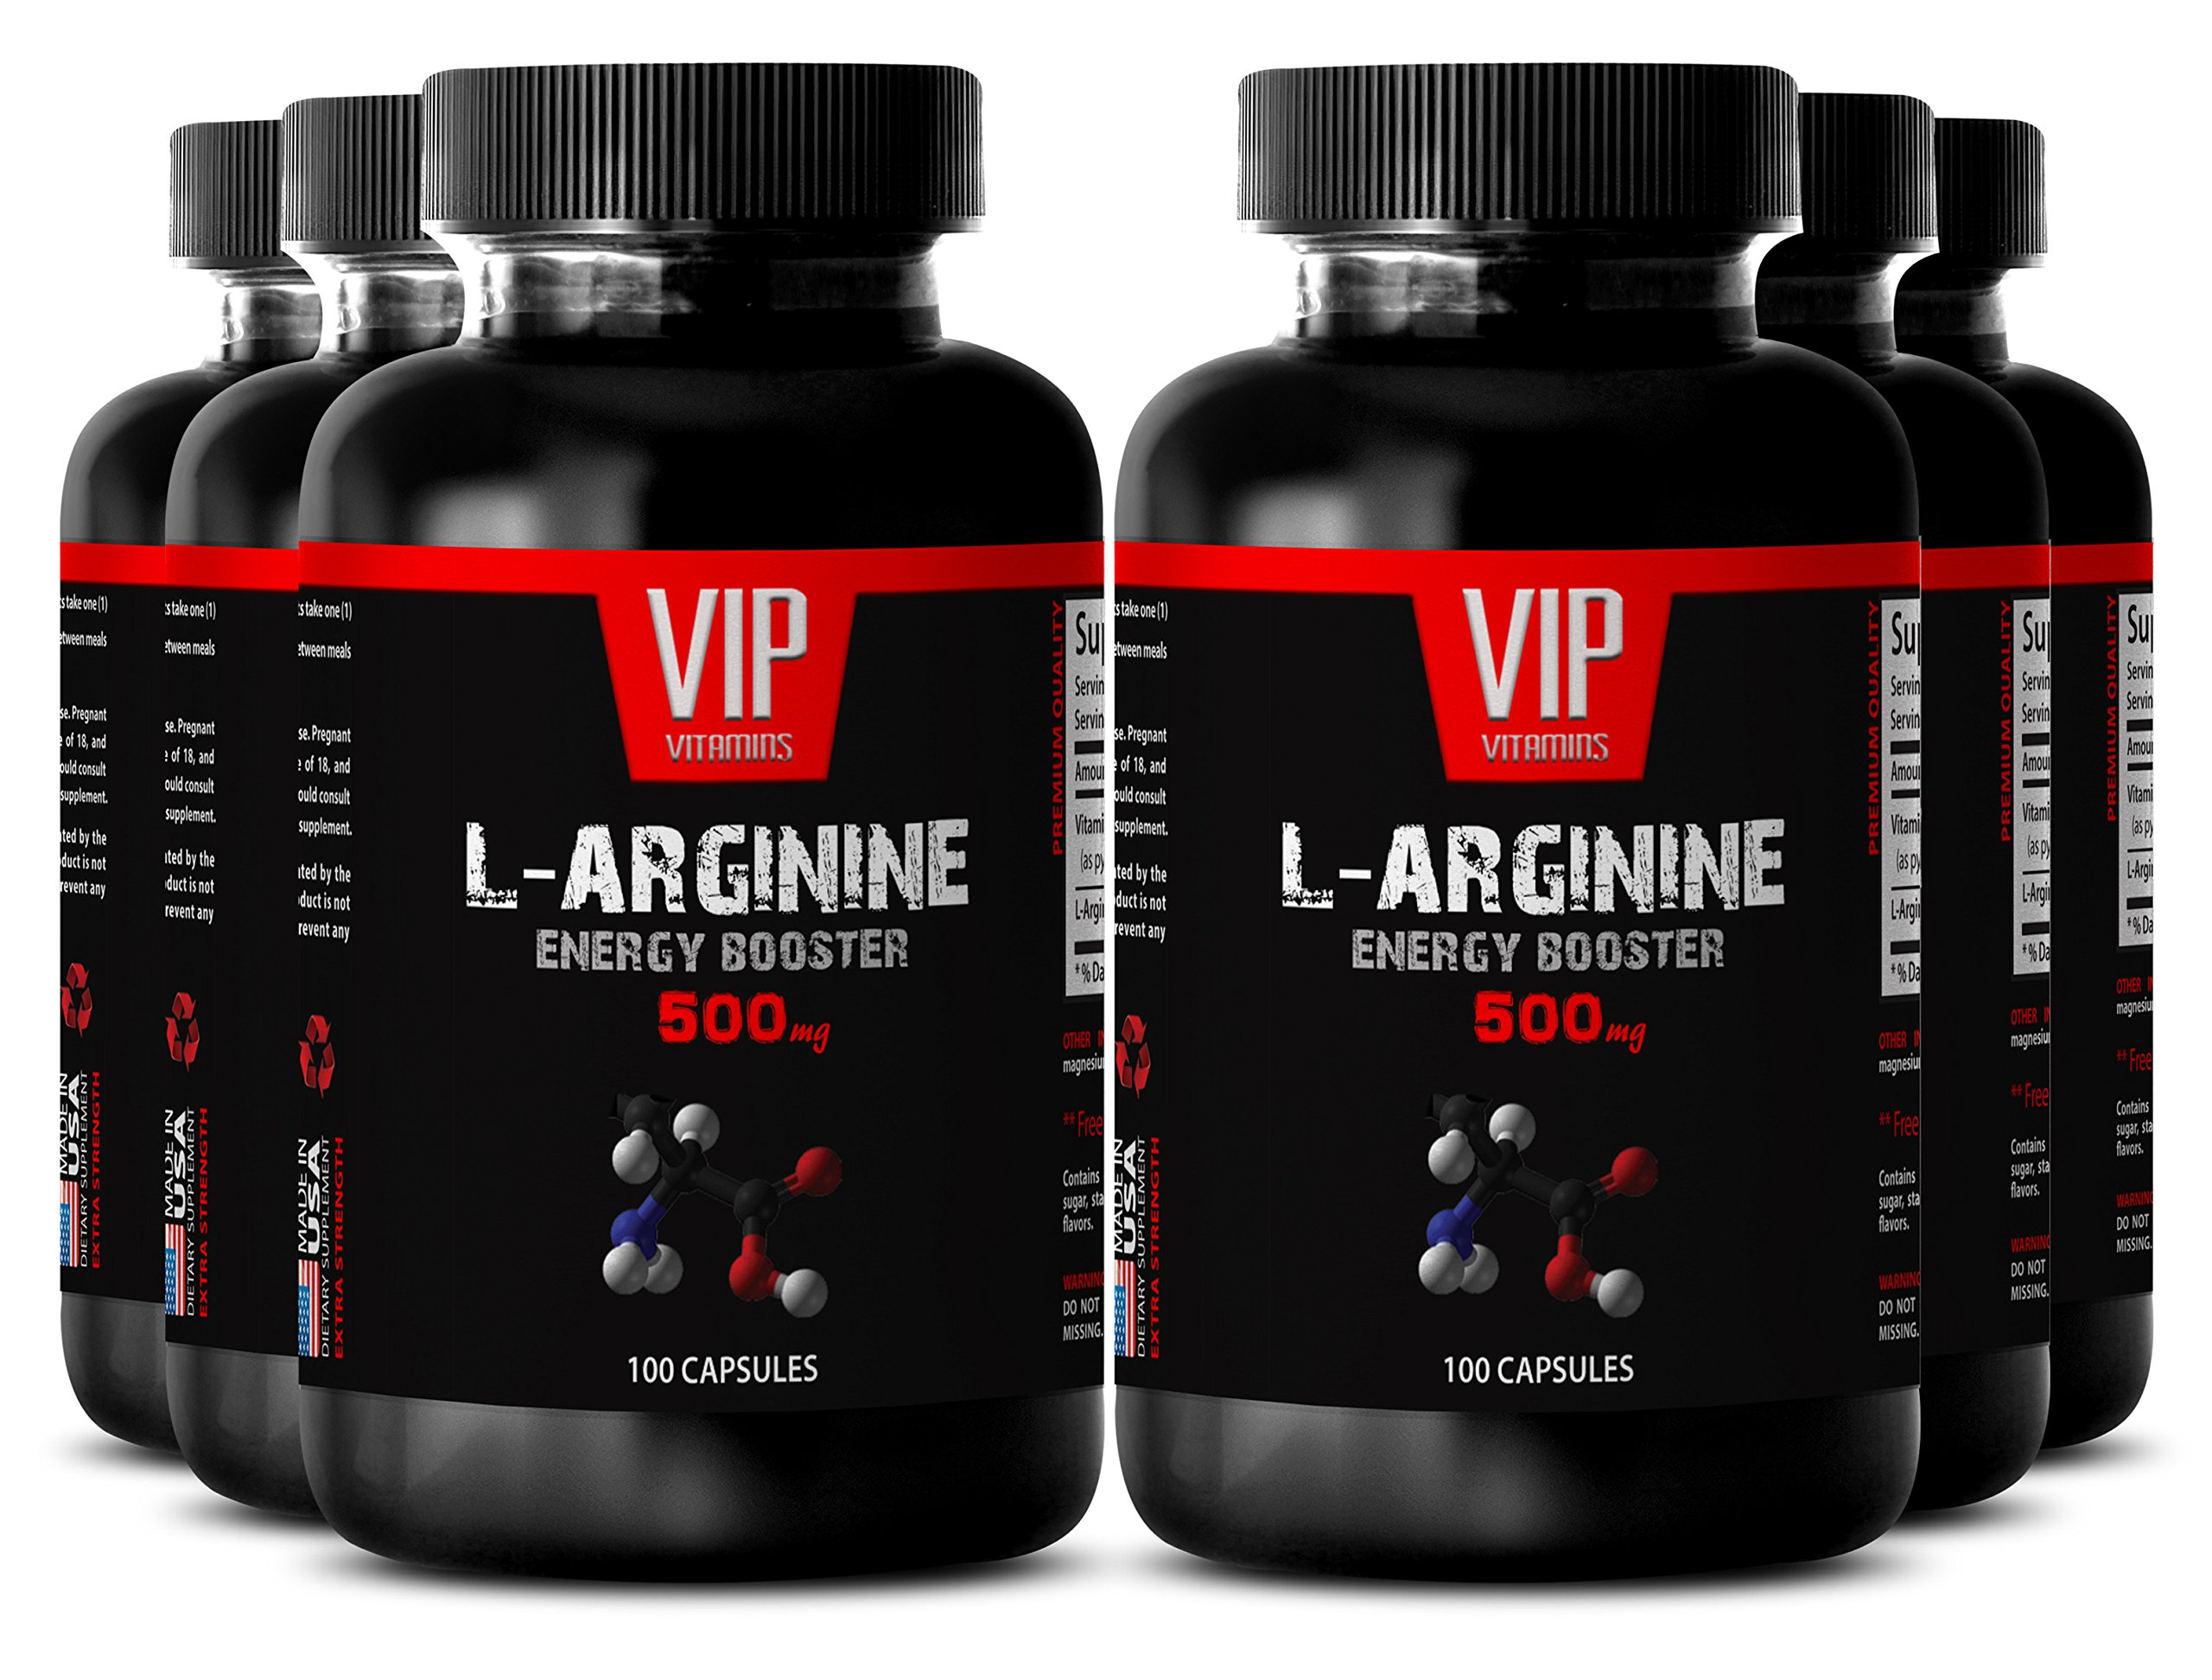 VIP VITAMINS Arginine sex - L-ARGININE Energy Booster 500 mg - Increase libido - 6 Bottles 600 Capsules